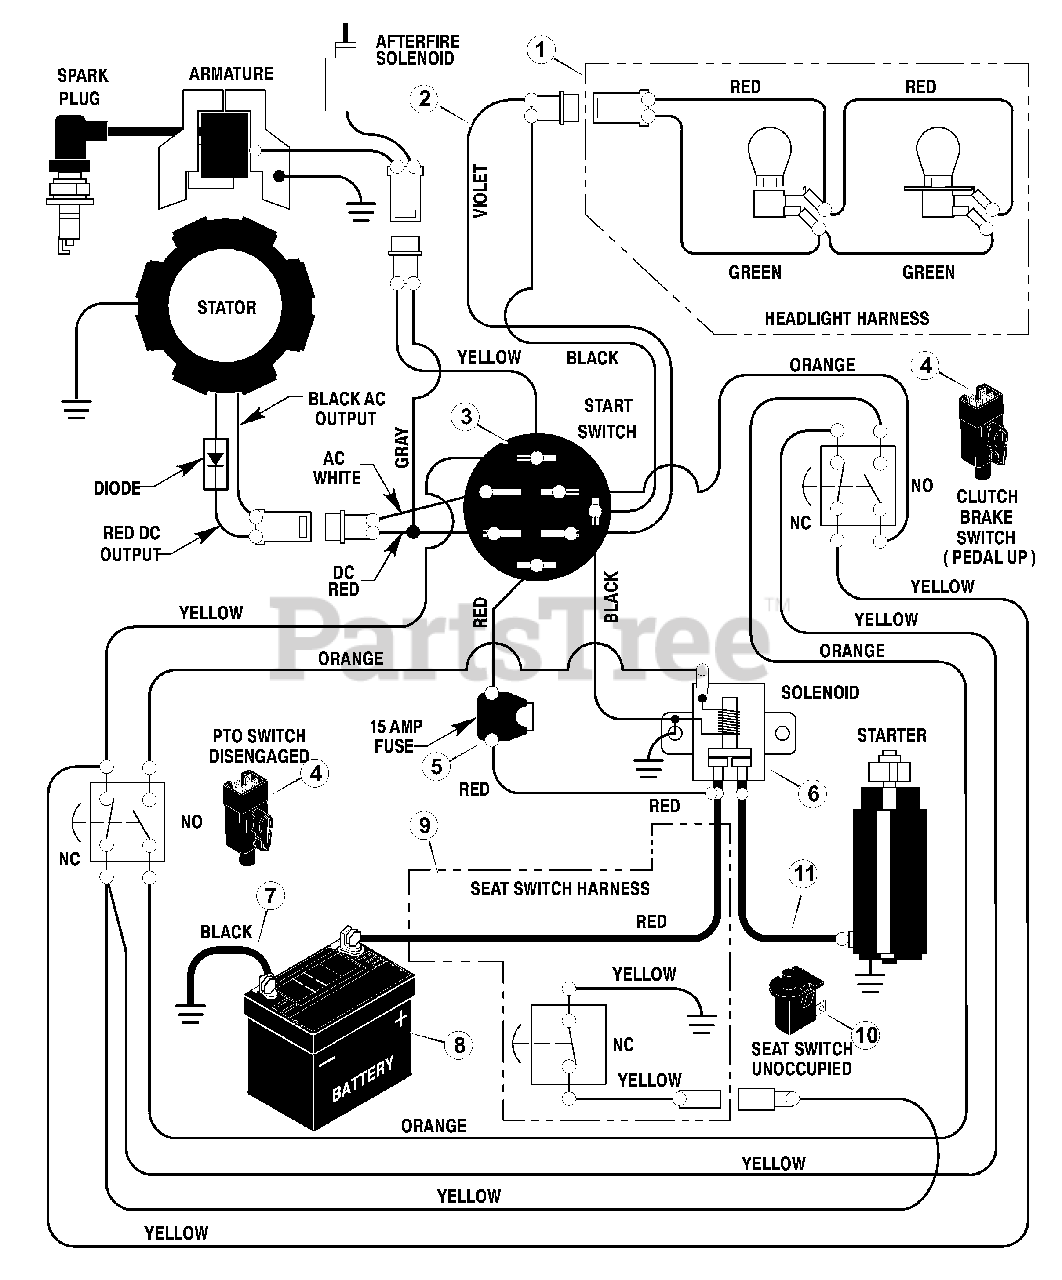 [DIAGRAM] Power King 1614 Tractor Wiring Diagram FULL